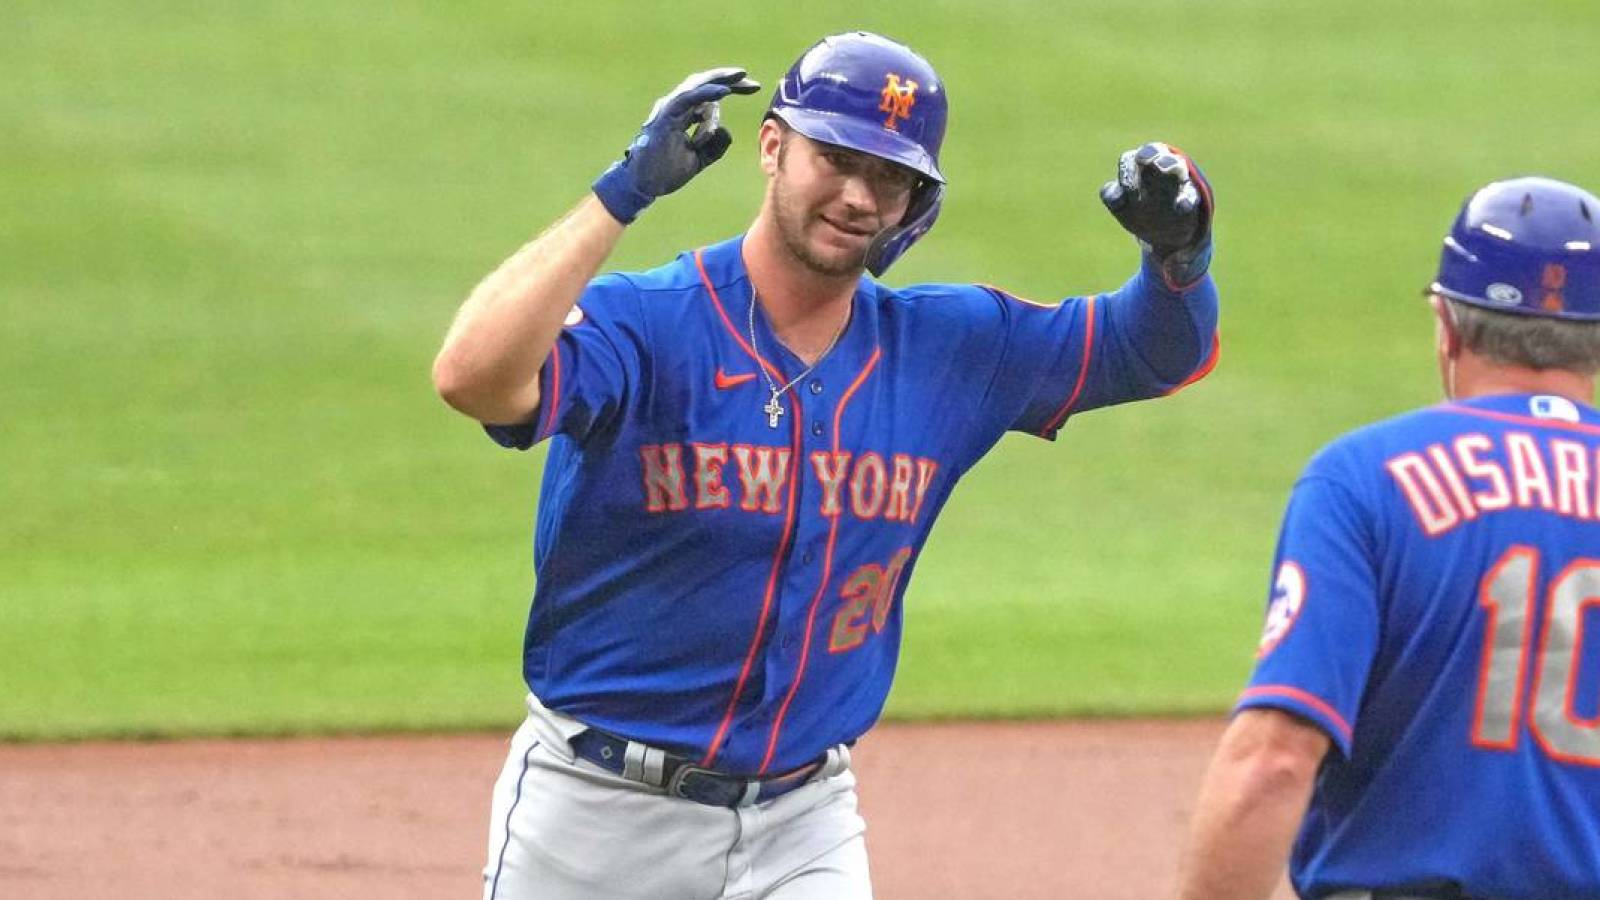 Pete Alonso to defend the title in the 2021 Home Run Derby